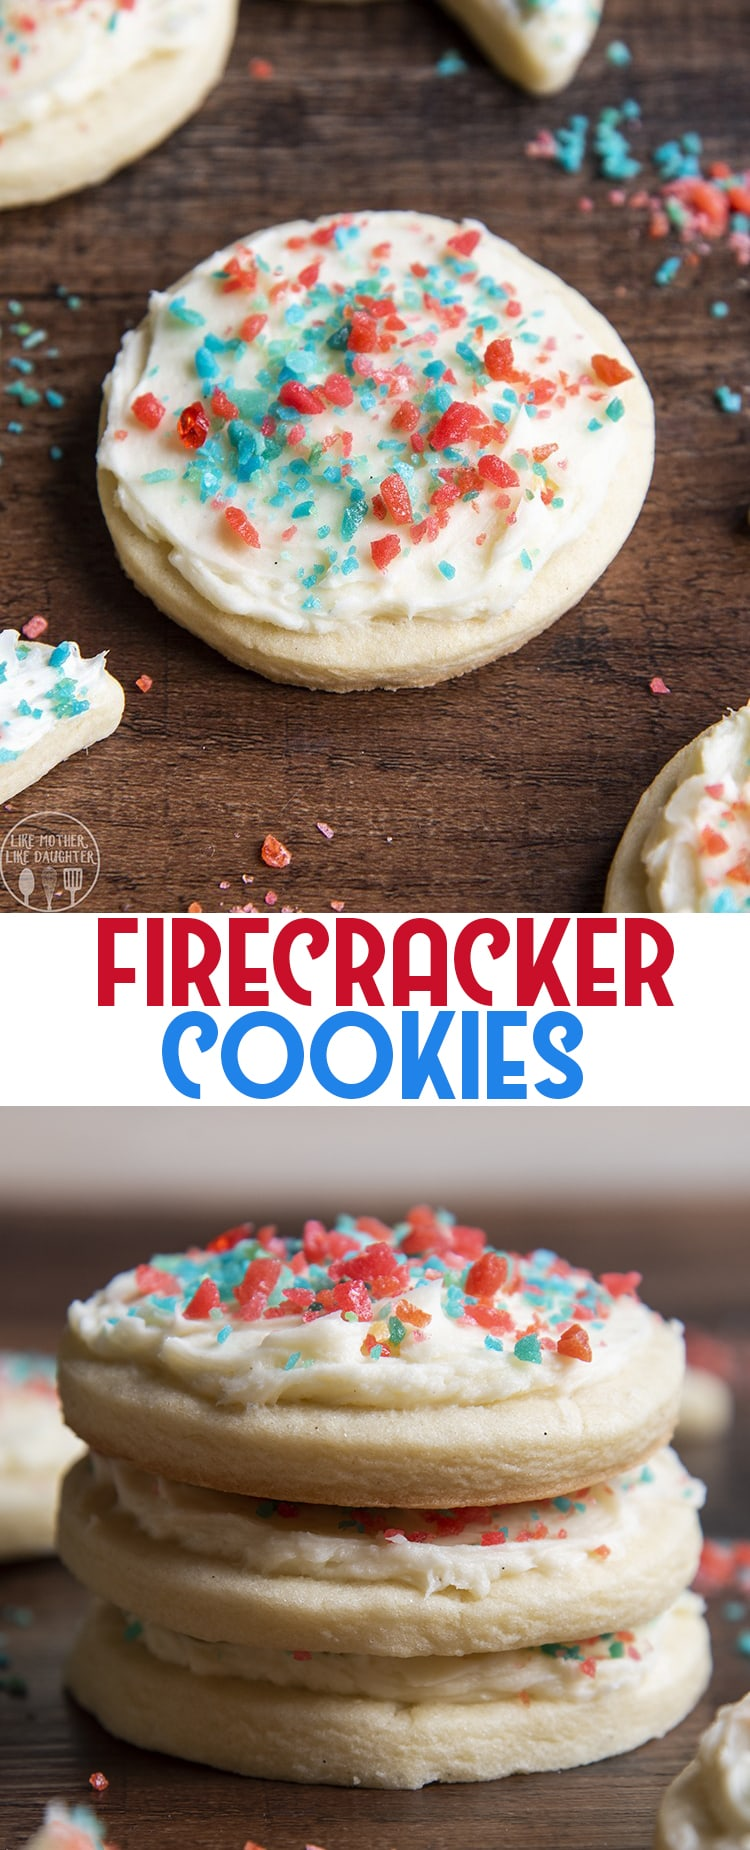 These firecracker cookies are the perfect way to celebrate the Fourth of July! With an explosion in your mouth in every bite.